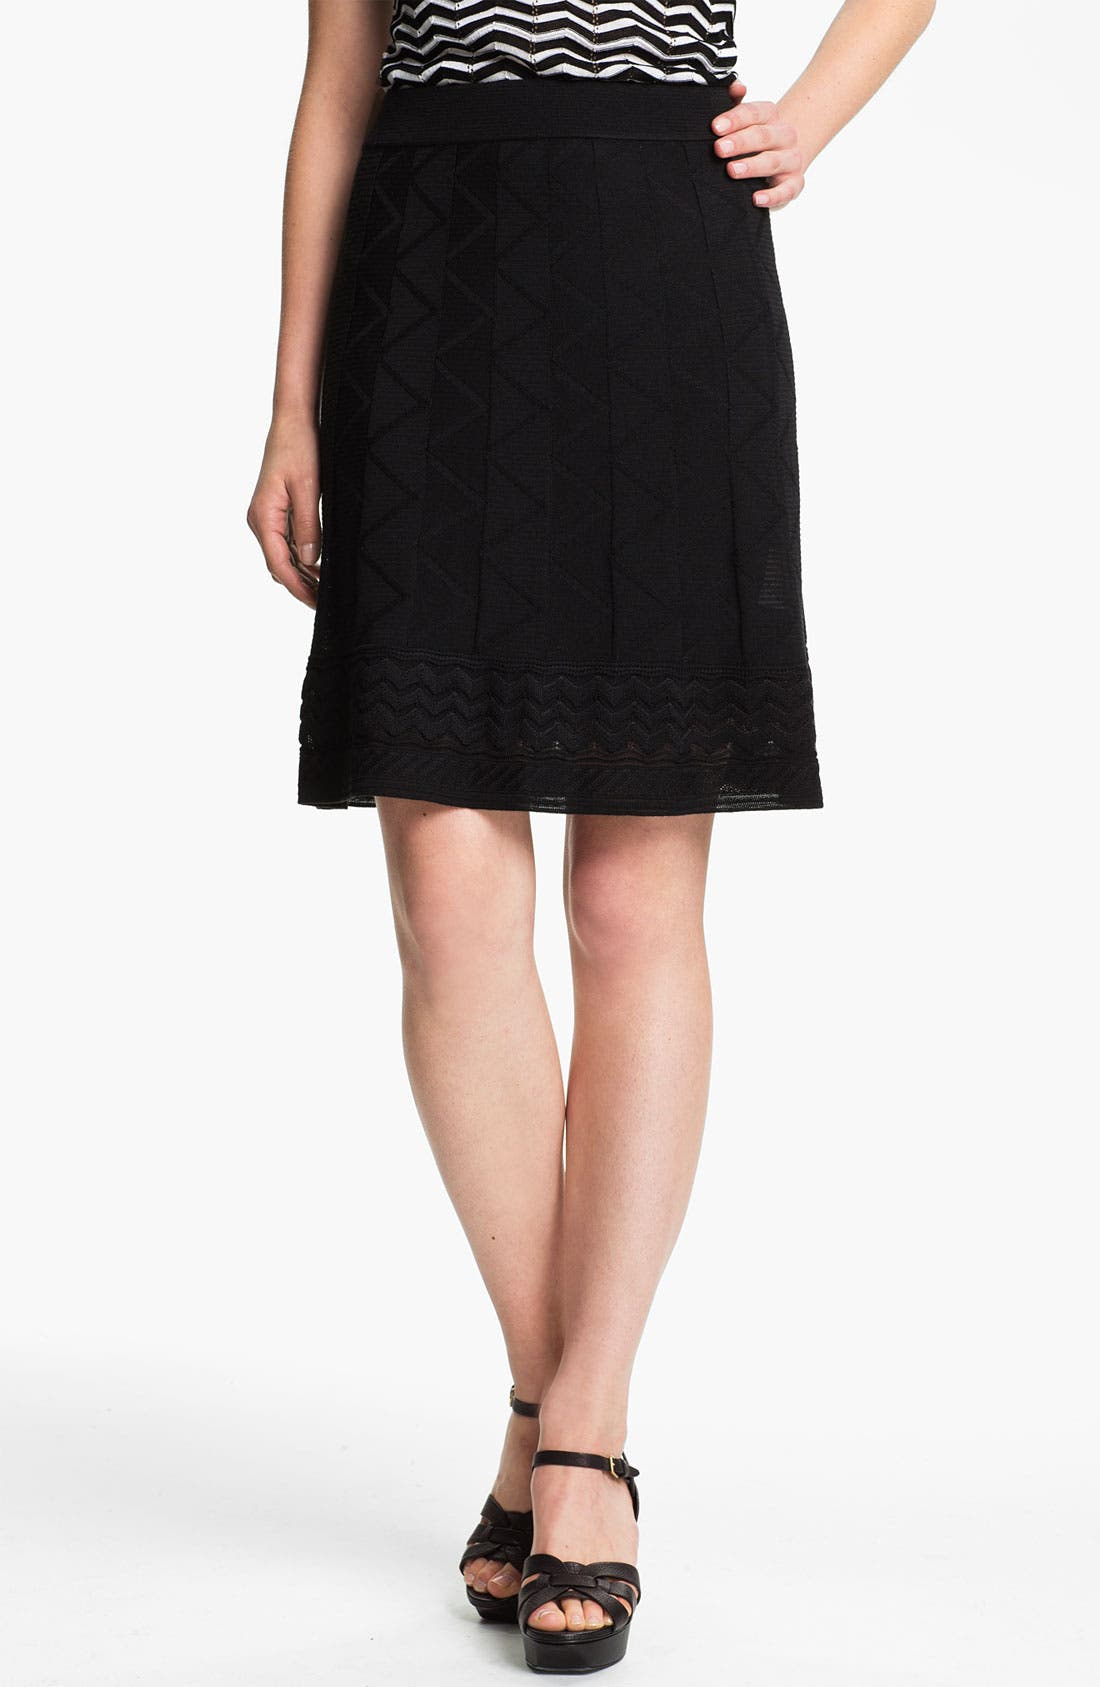 Alternate Image 1 Selected - M Missoni Tonal Zigzag Skirt